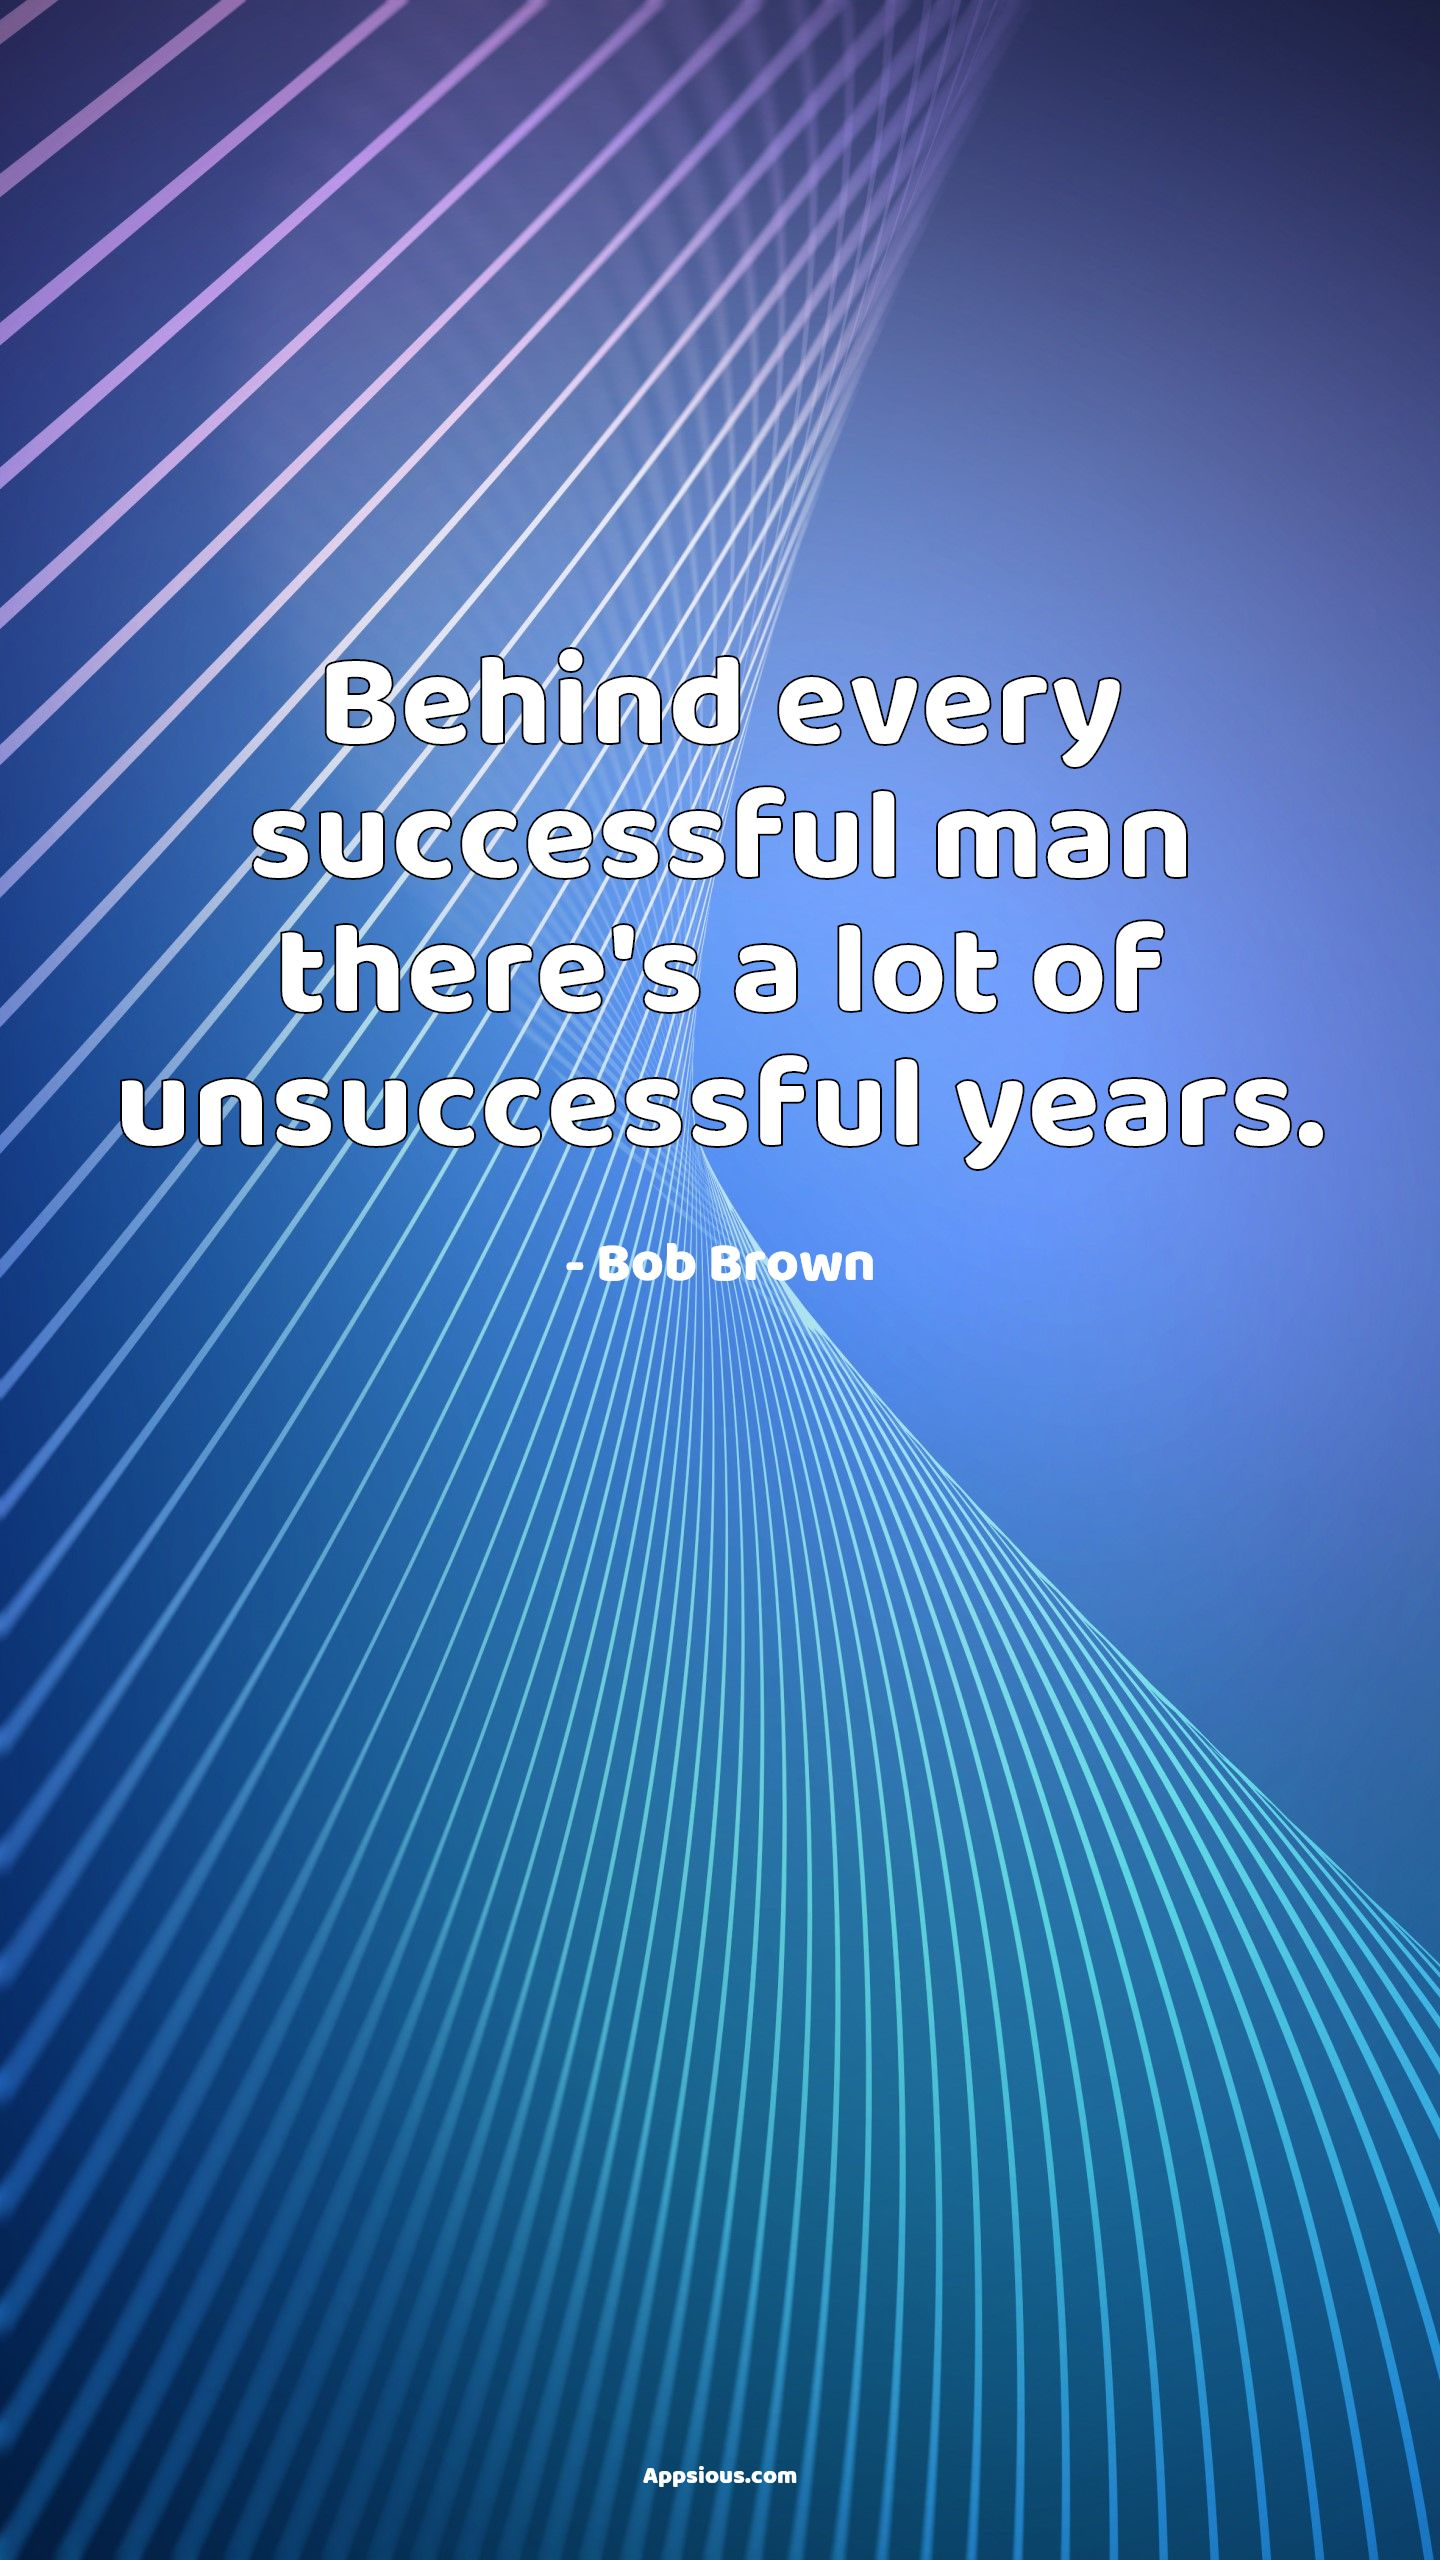 Behind every successful man there's a lot of unsuccessful years.